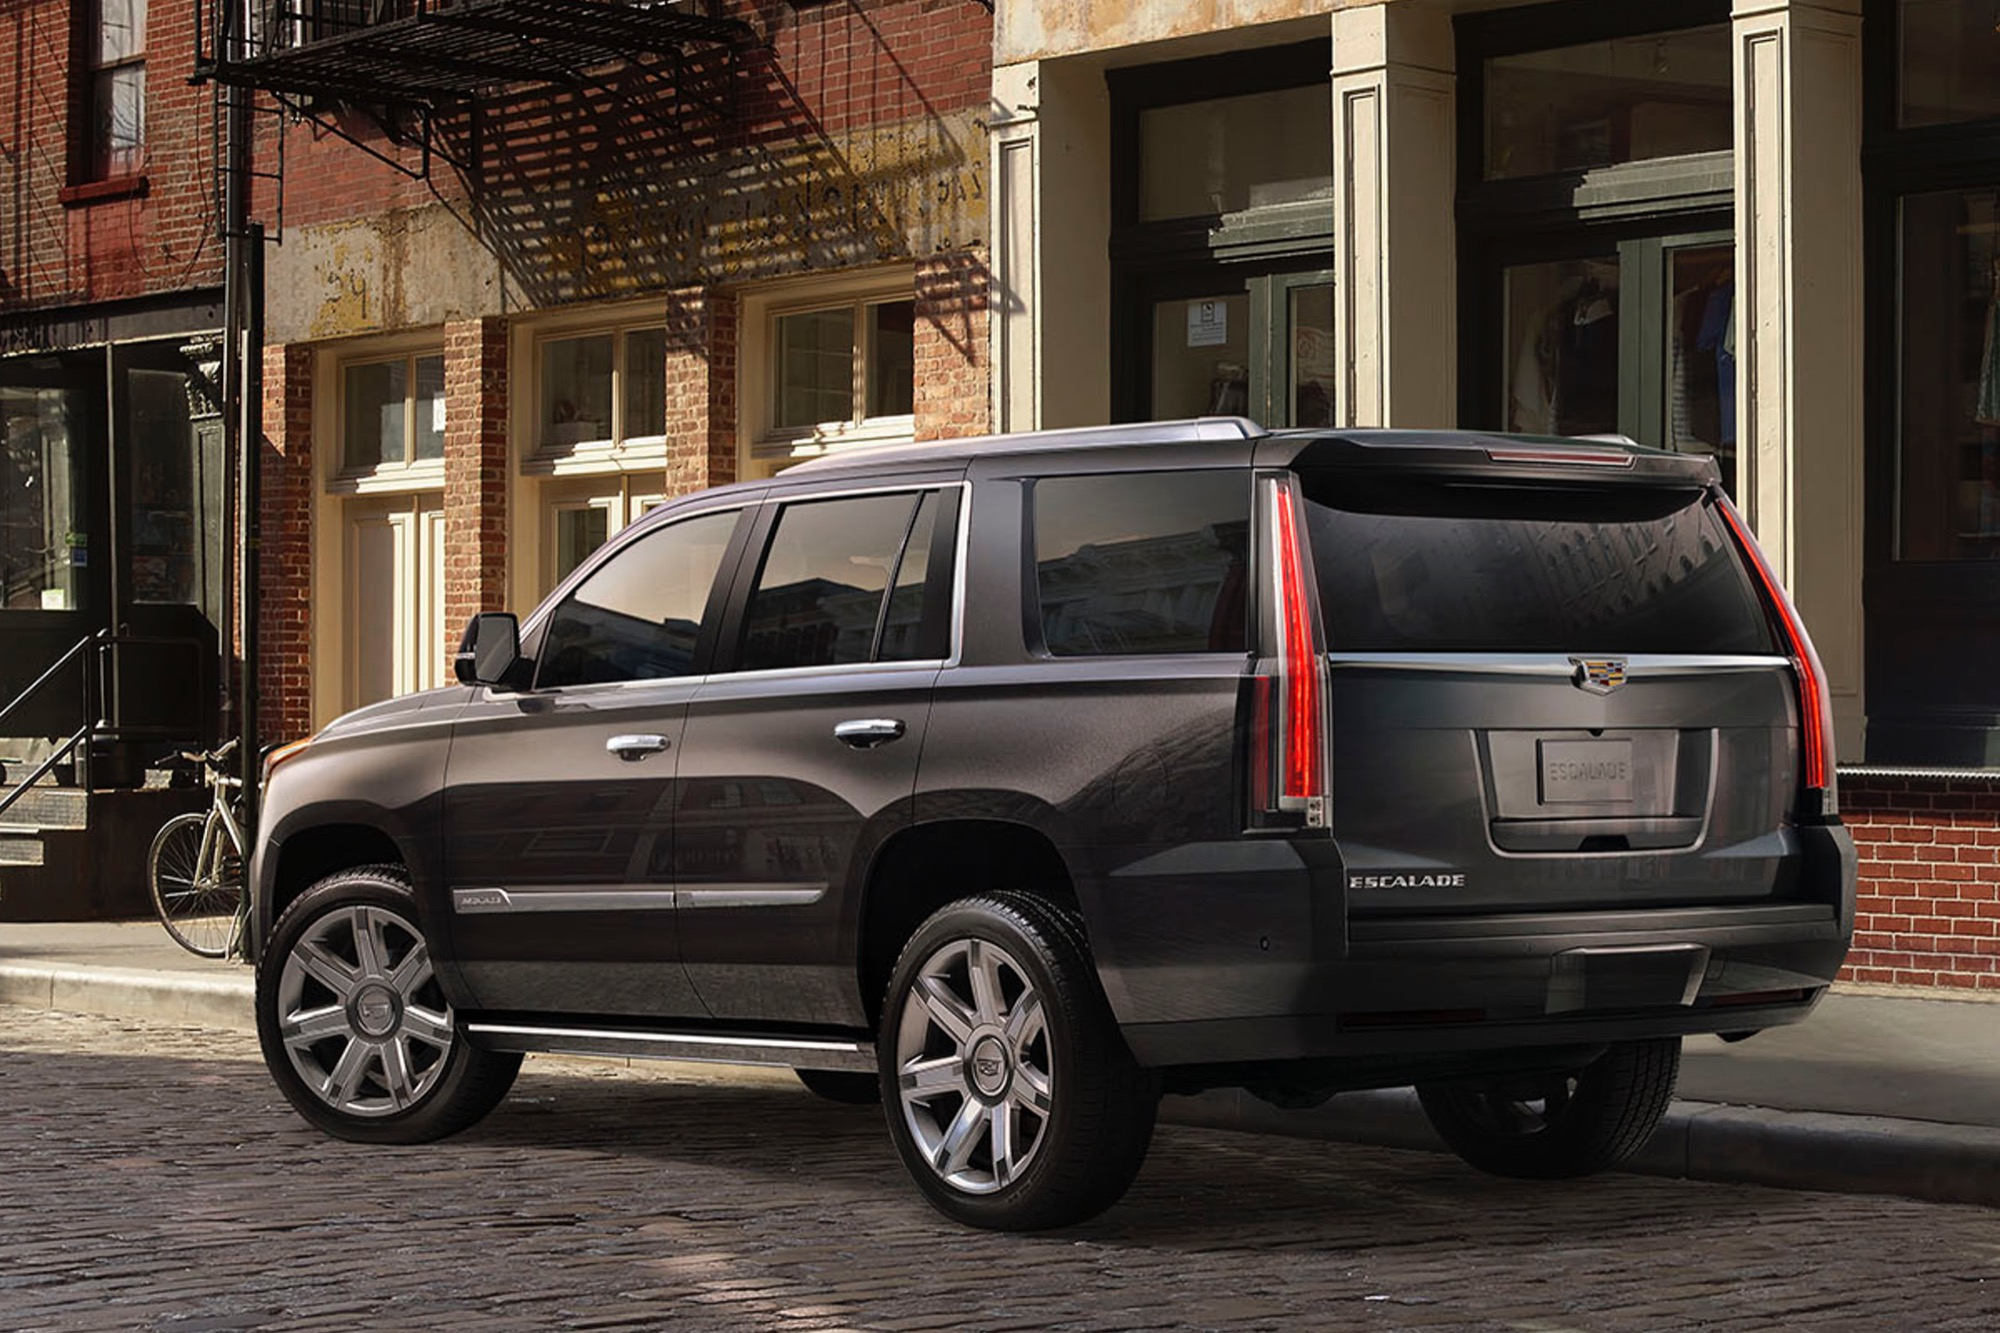 41 All New Price Of 2020 Cadillac Escalade Pictures by Price Of 2020 Cadillac Escalade